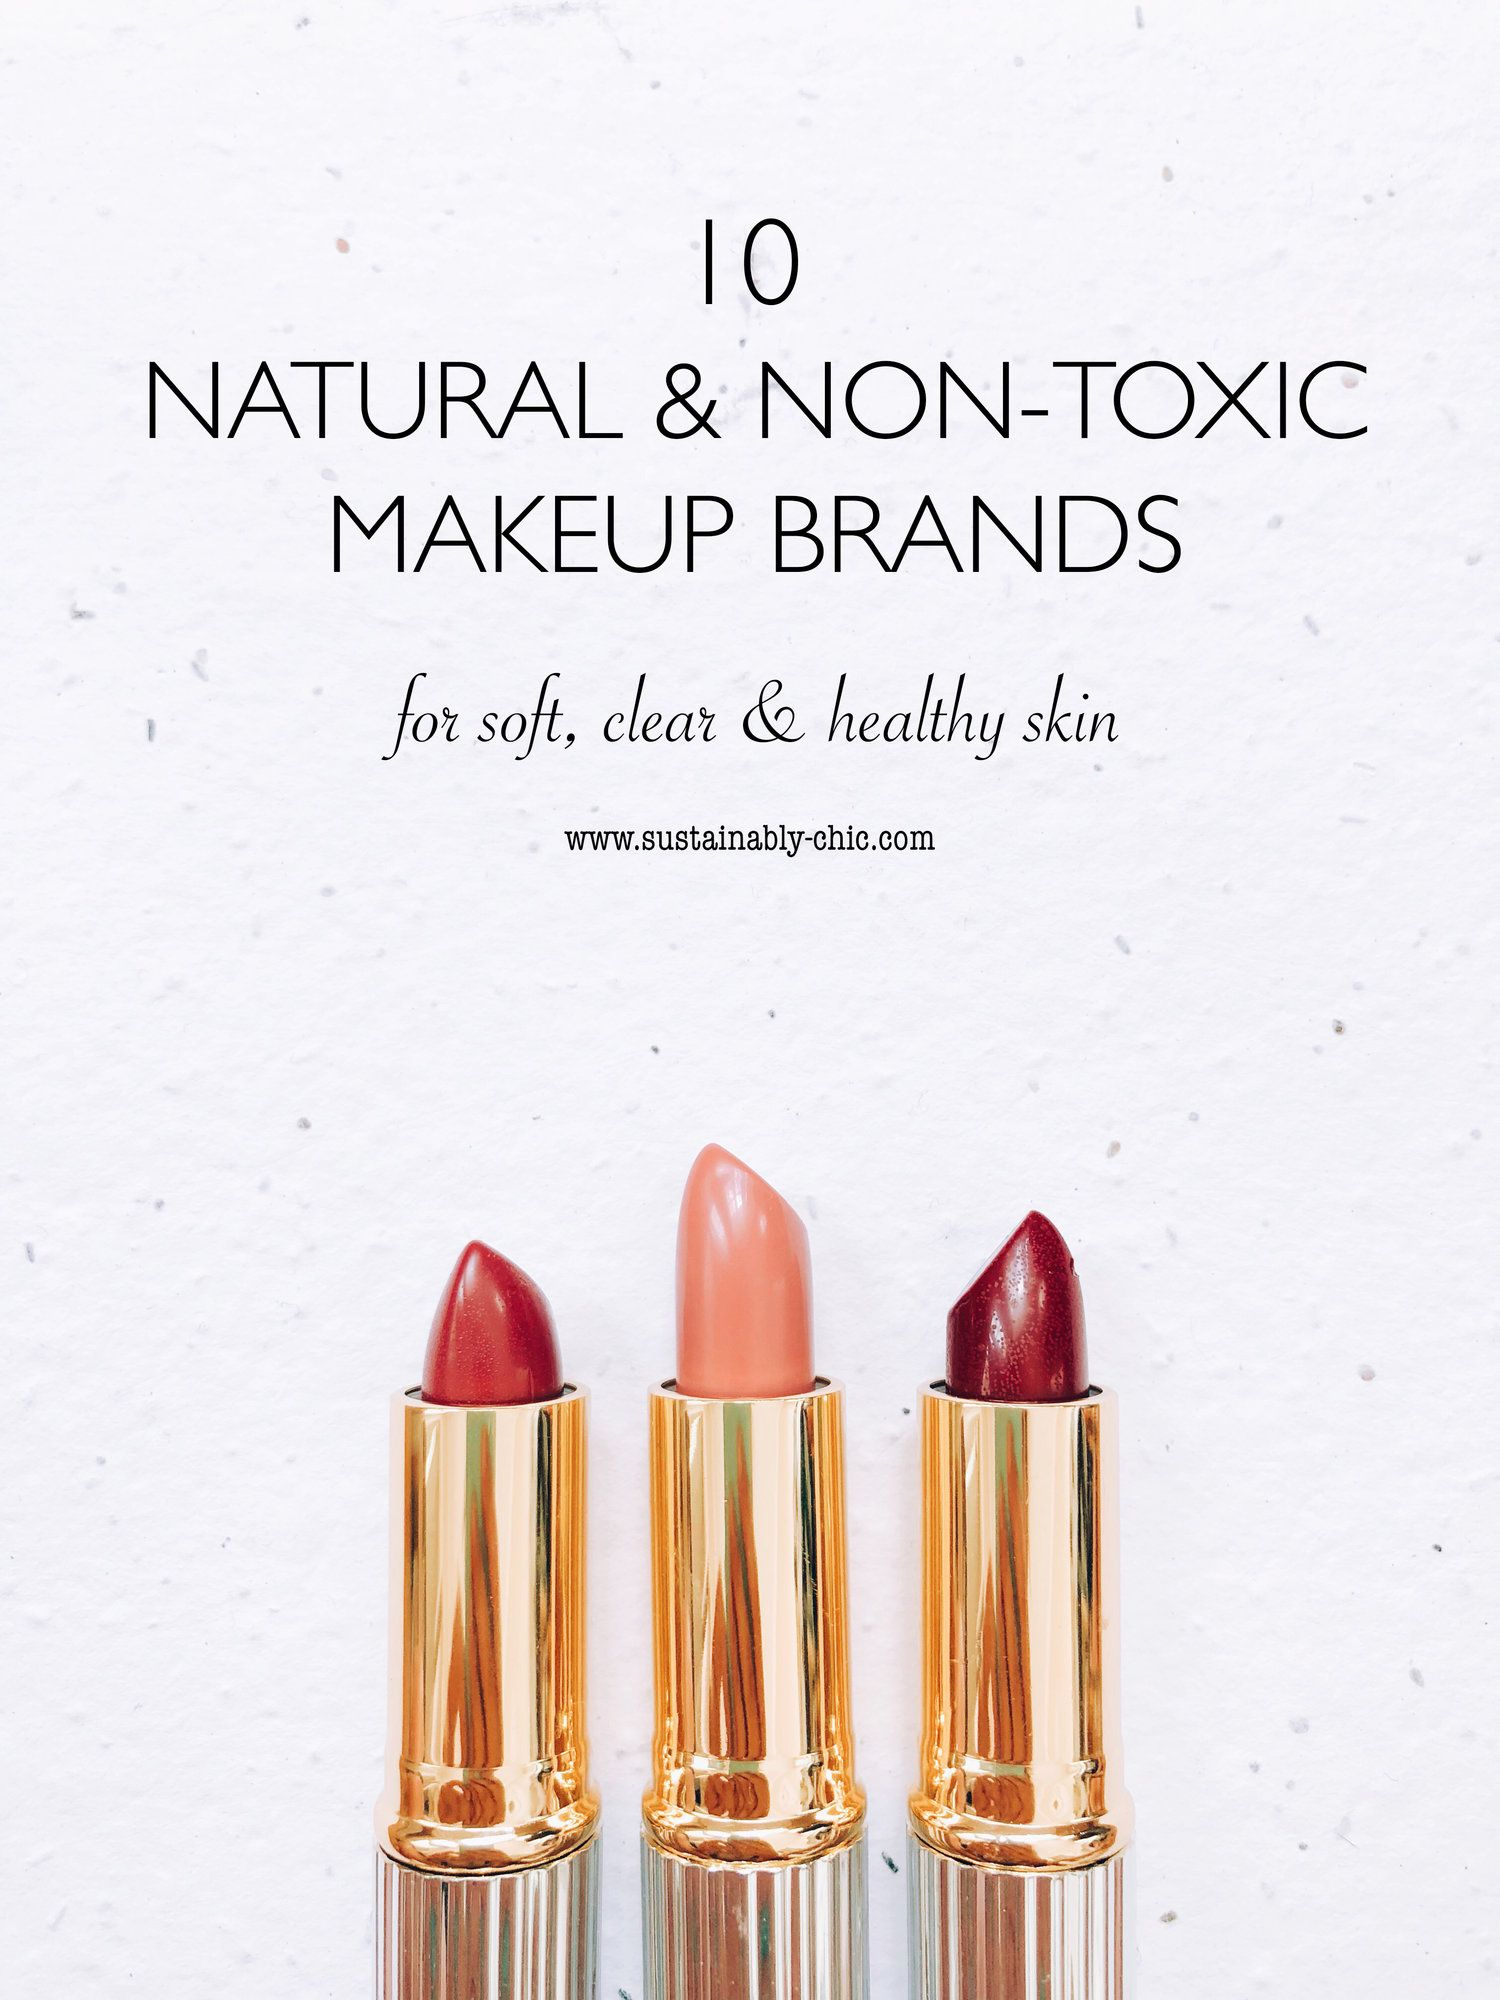 Photo of 10 Natural & Non-Toxic Makeup Brands for Soft, Clear & Healthy Skin  — Sustainably Chic